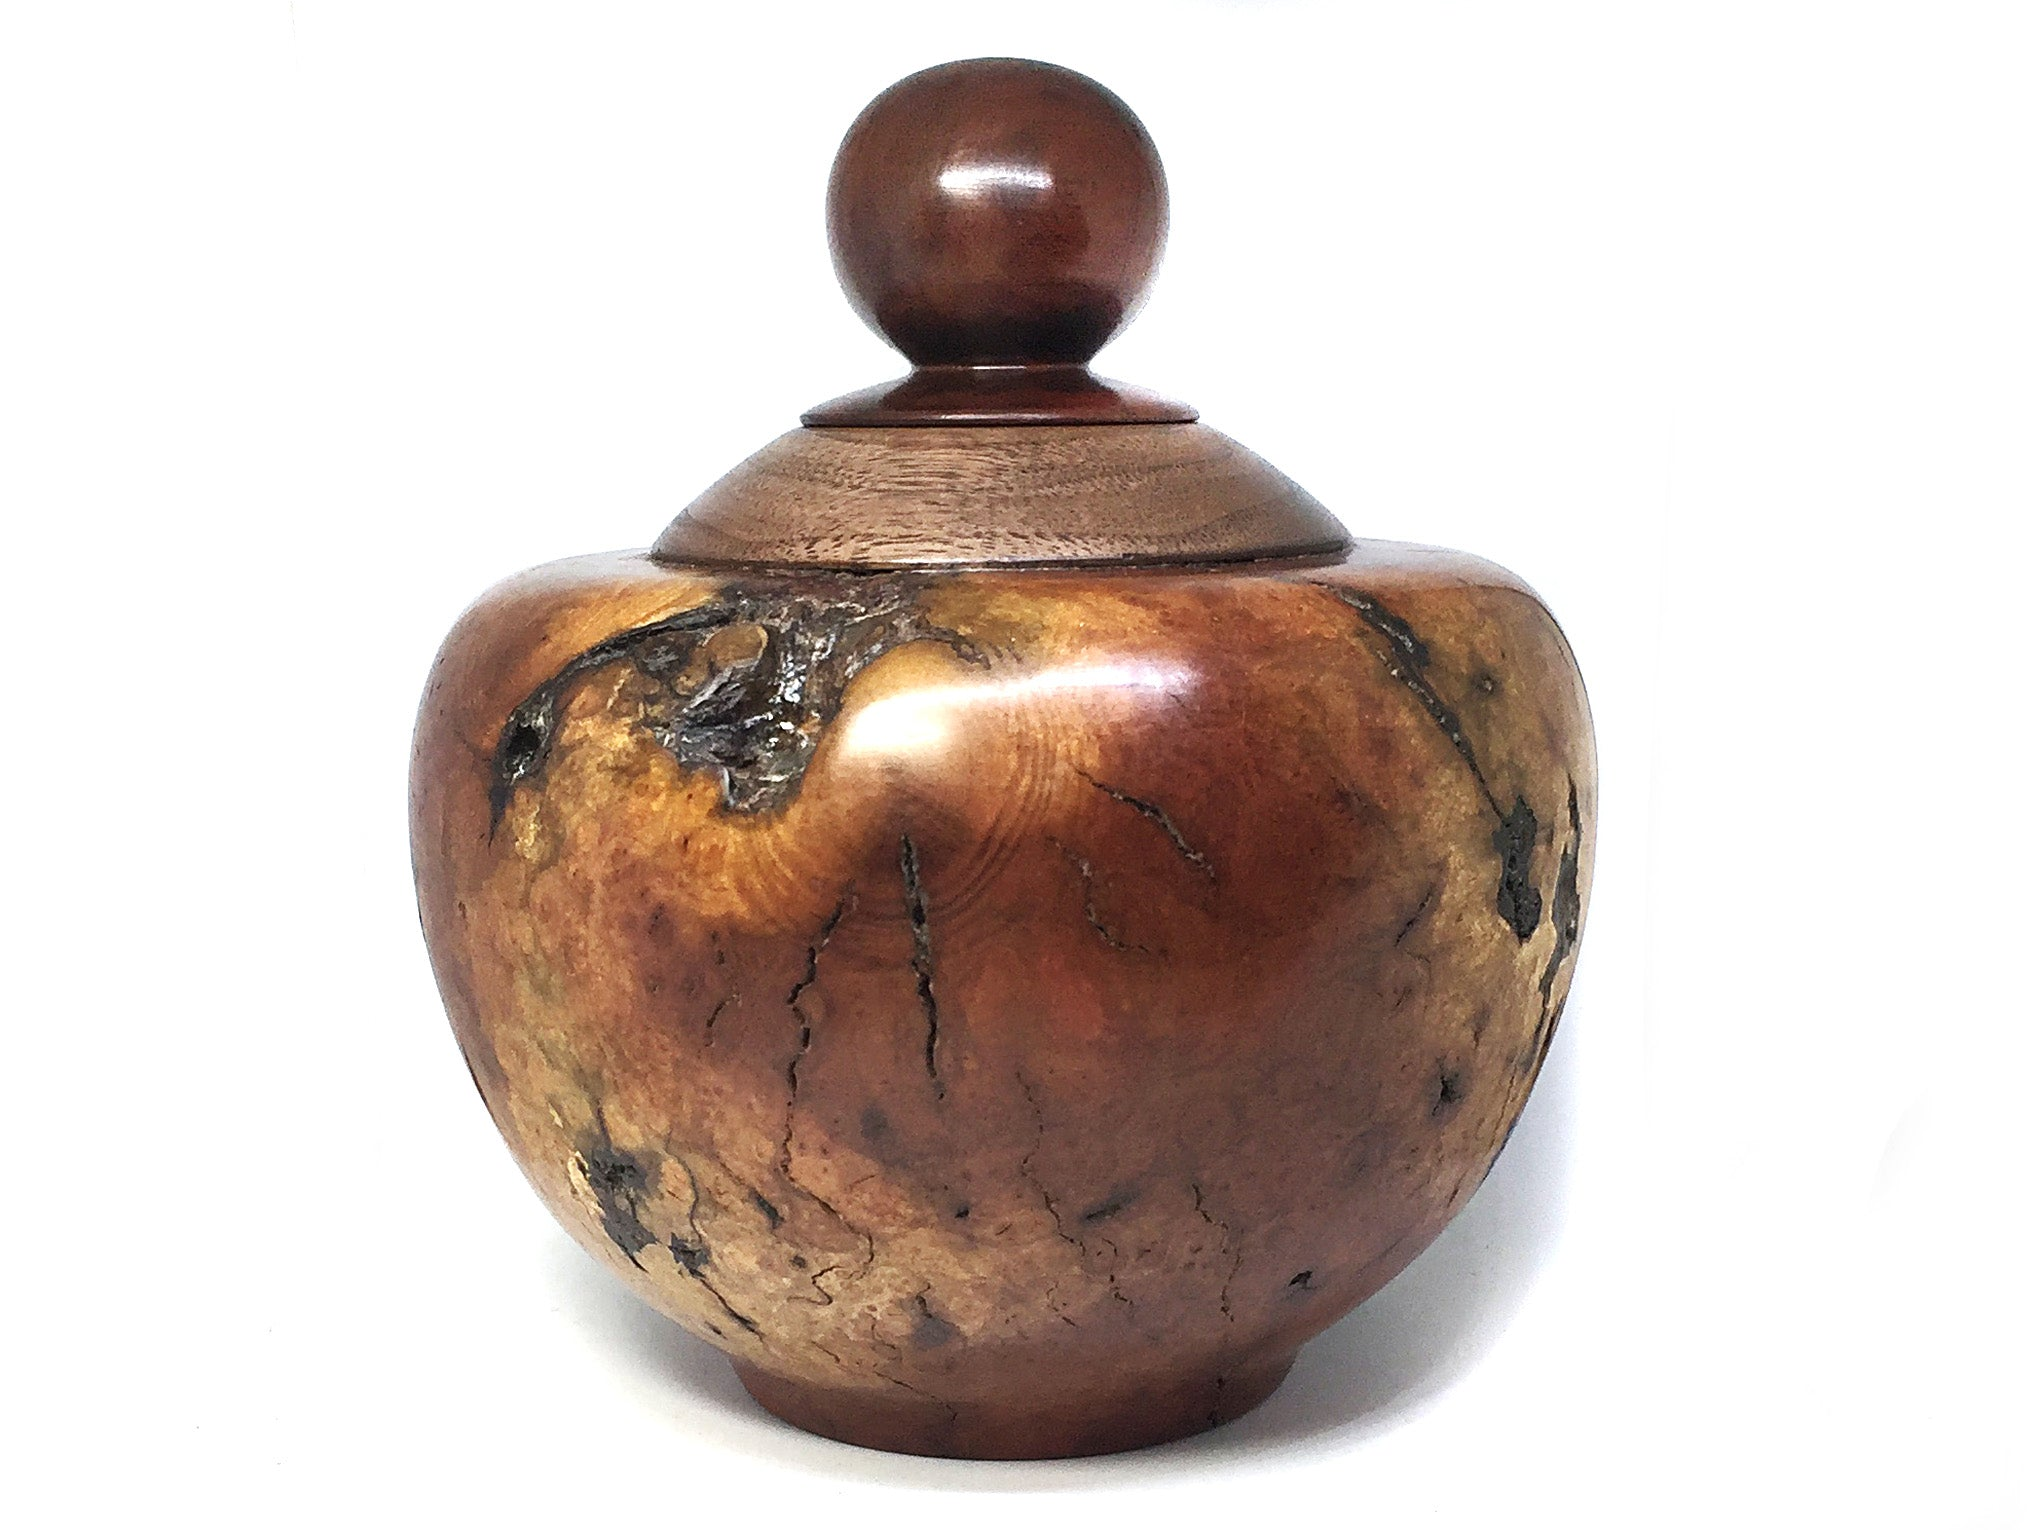 LV-4379  Manzanita Burl, Black Walnut and Manzanita wood cap-Threaded